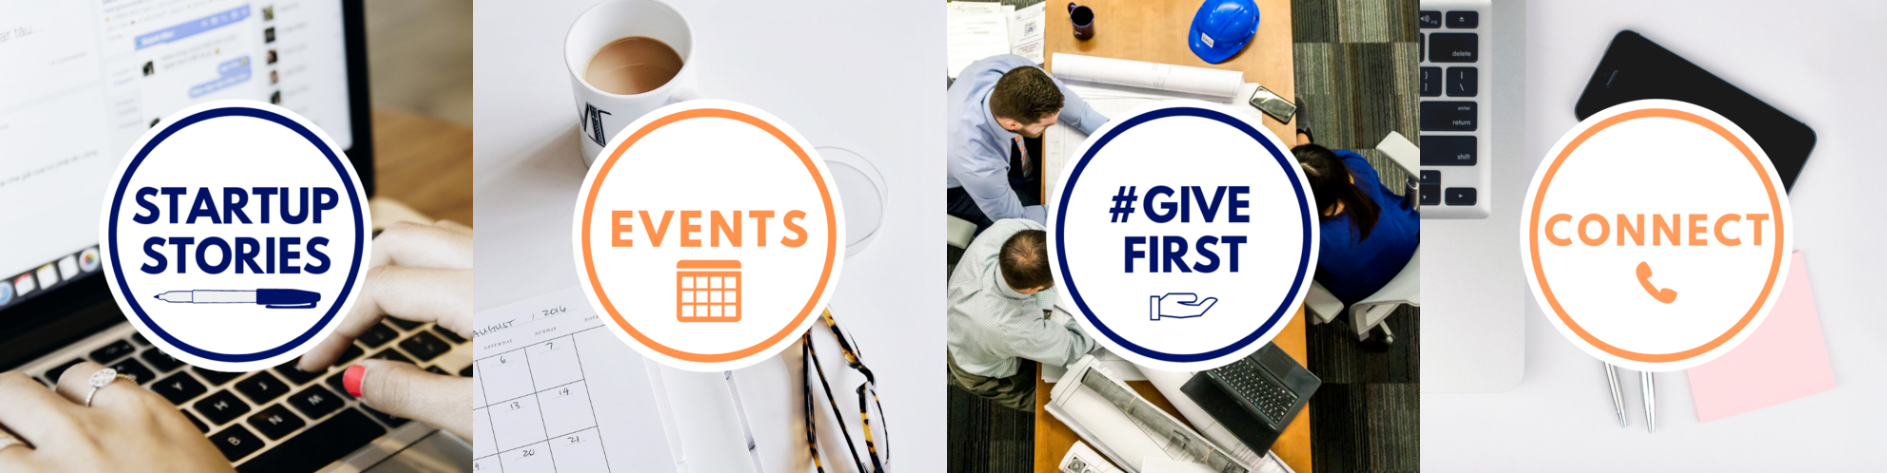 Startup Stories, Events, #GiveFirst, Connect